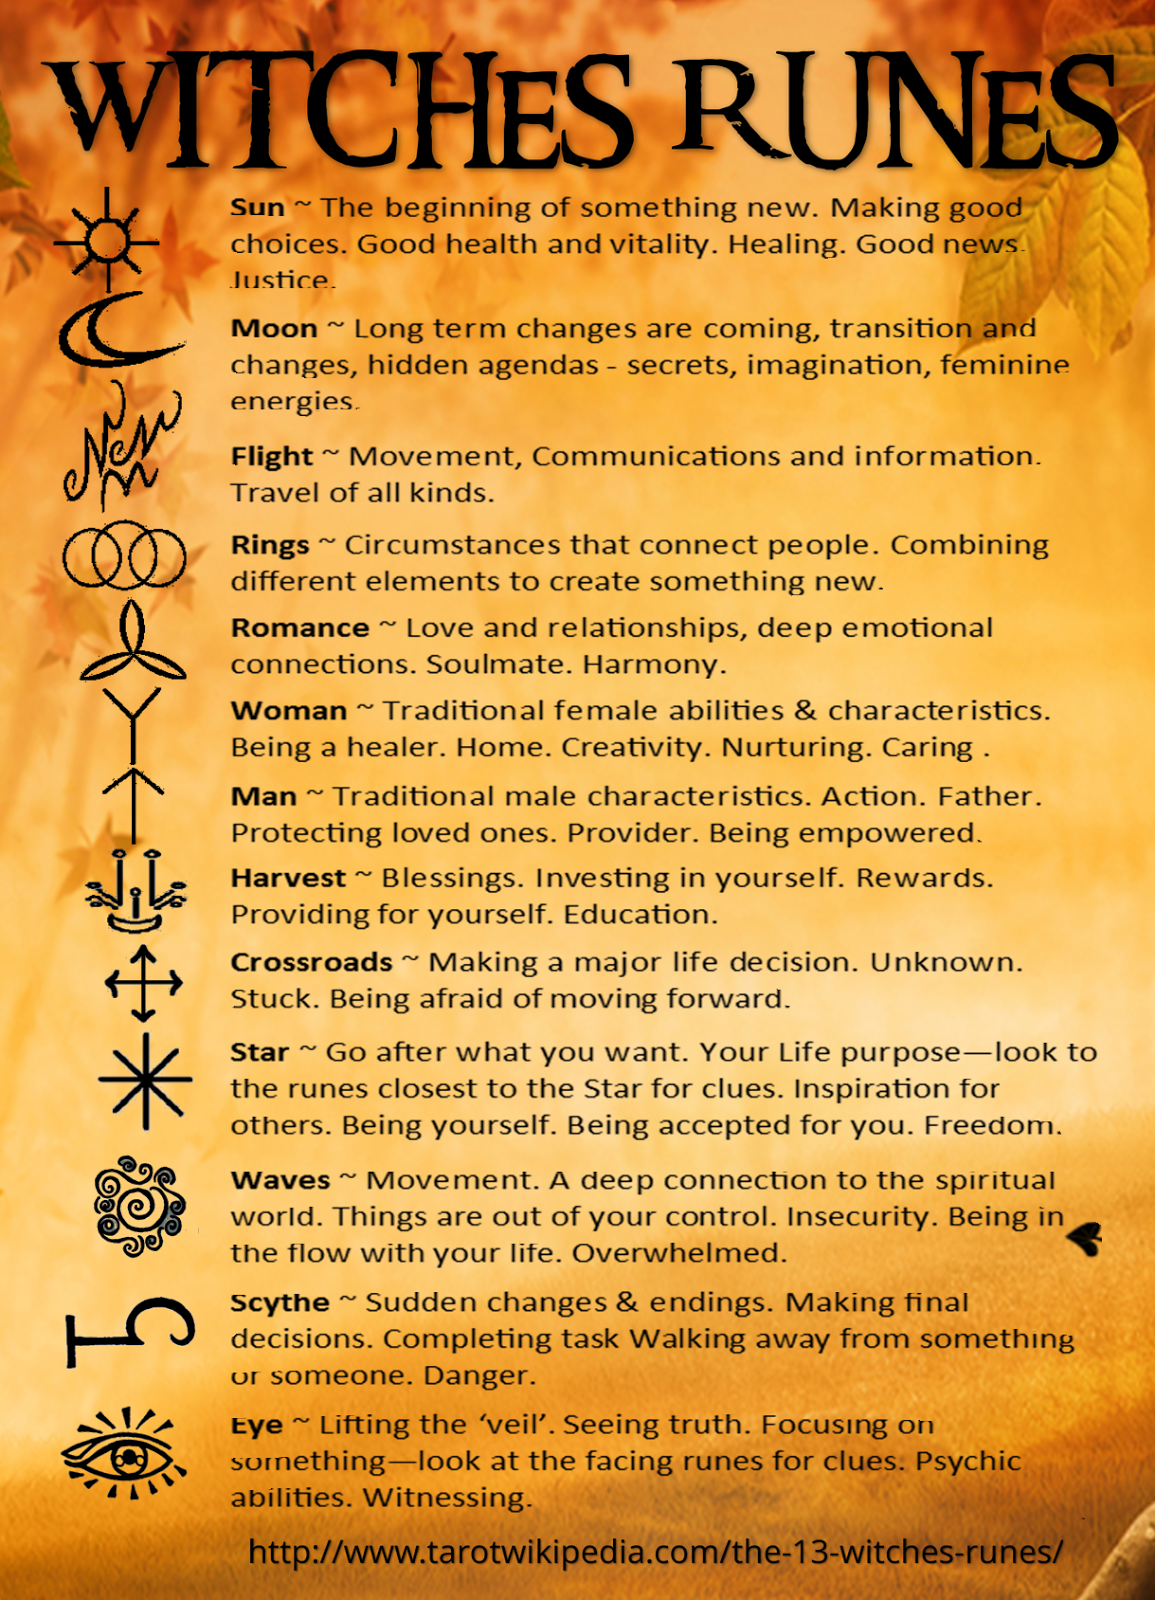 You Can Cast The 13 Witches Runes On A Piece Of Cloth Reading The